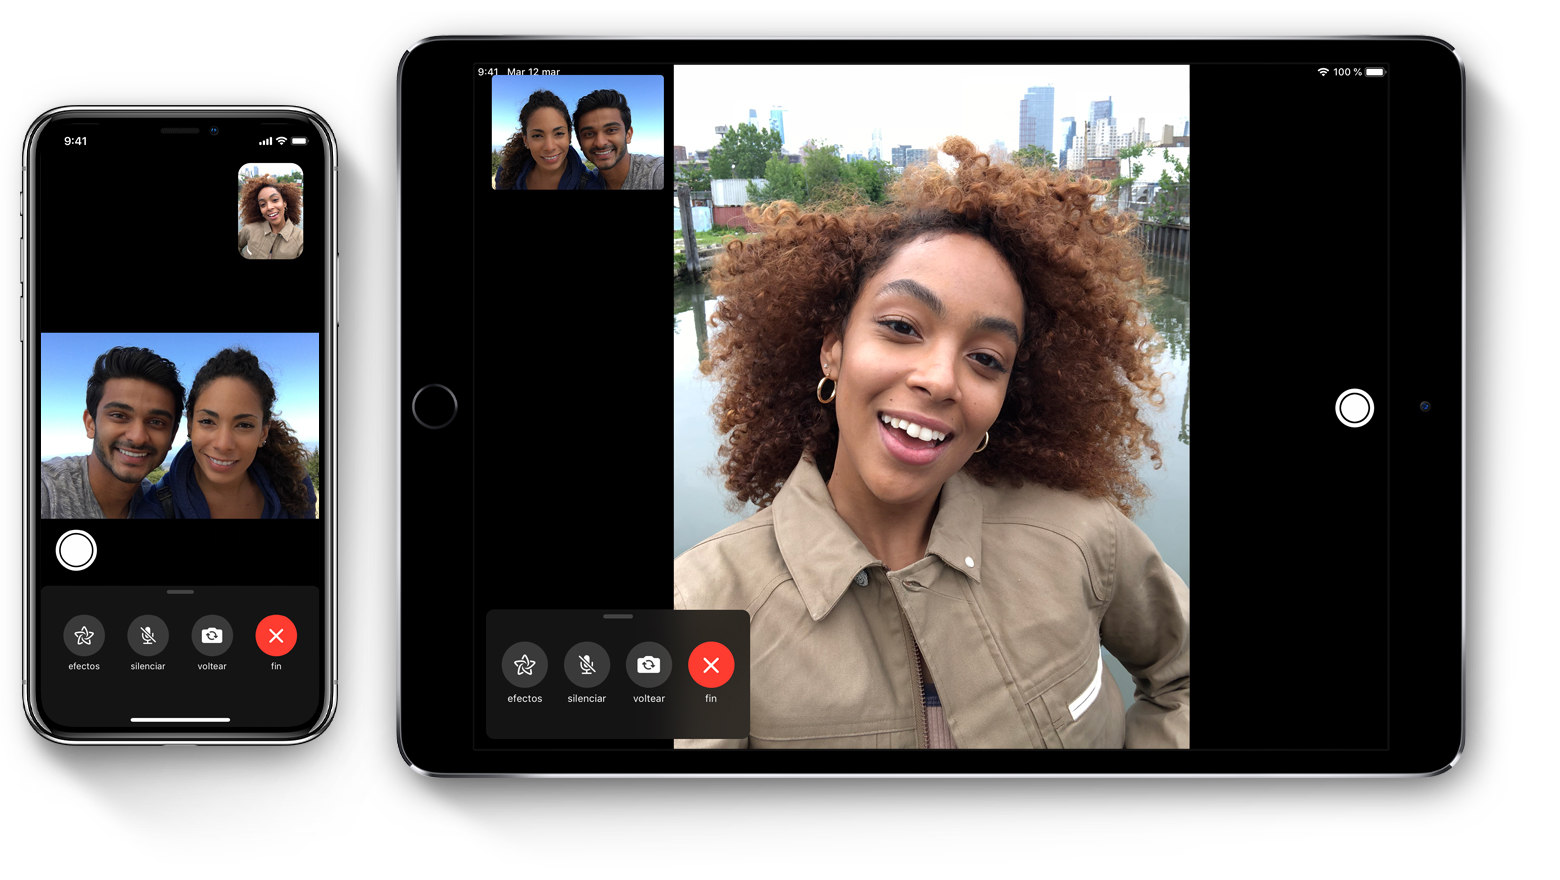 c2c17c6175b Usar FaceTime con el iPhone, iPad o iPod touch - Soporte técnico de  Apple